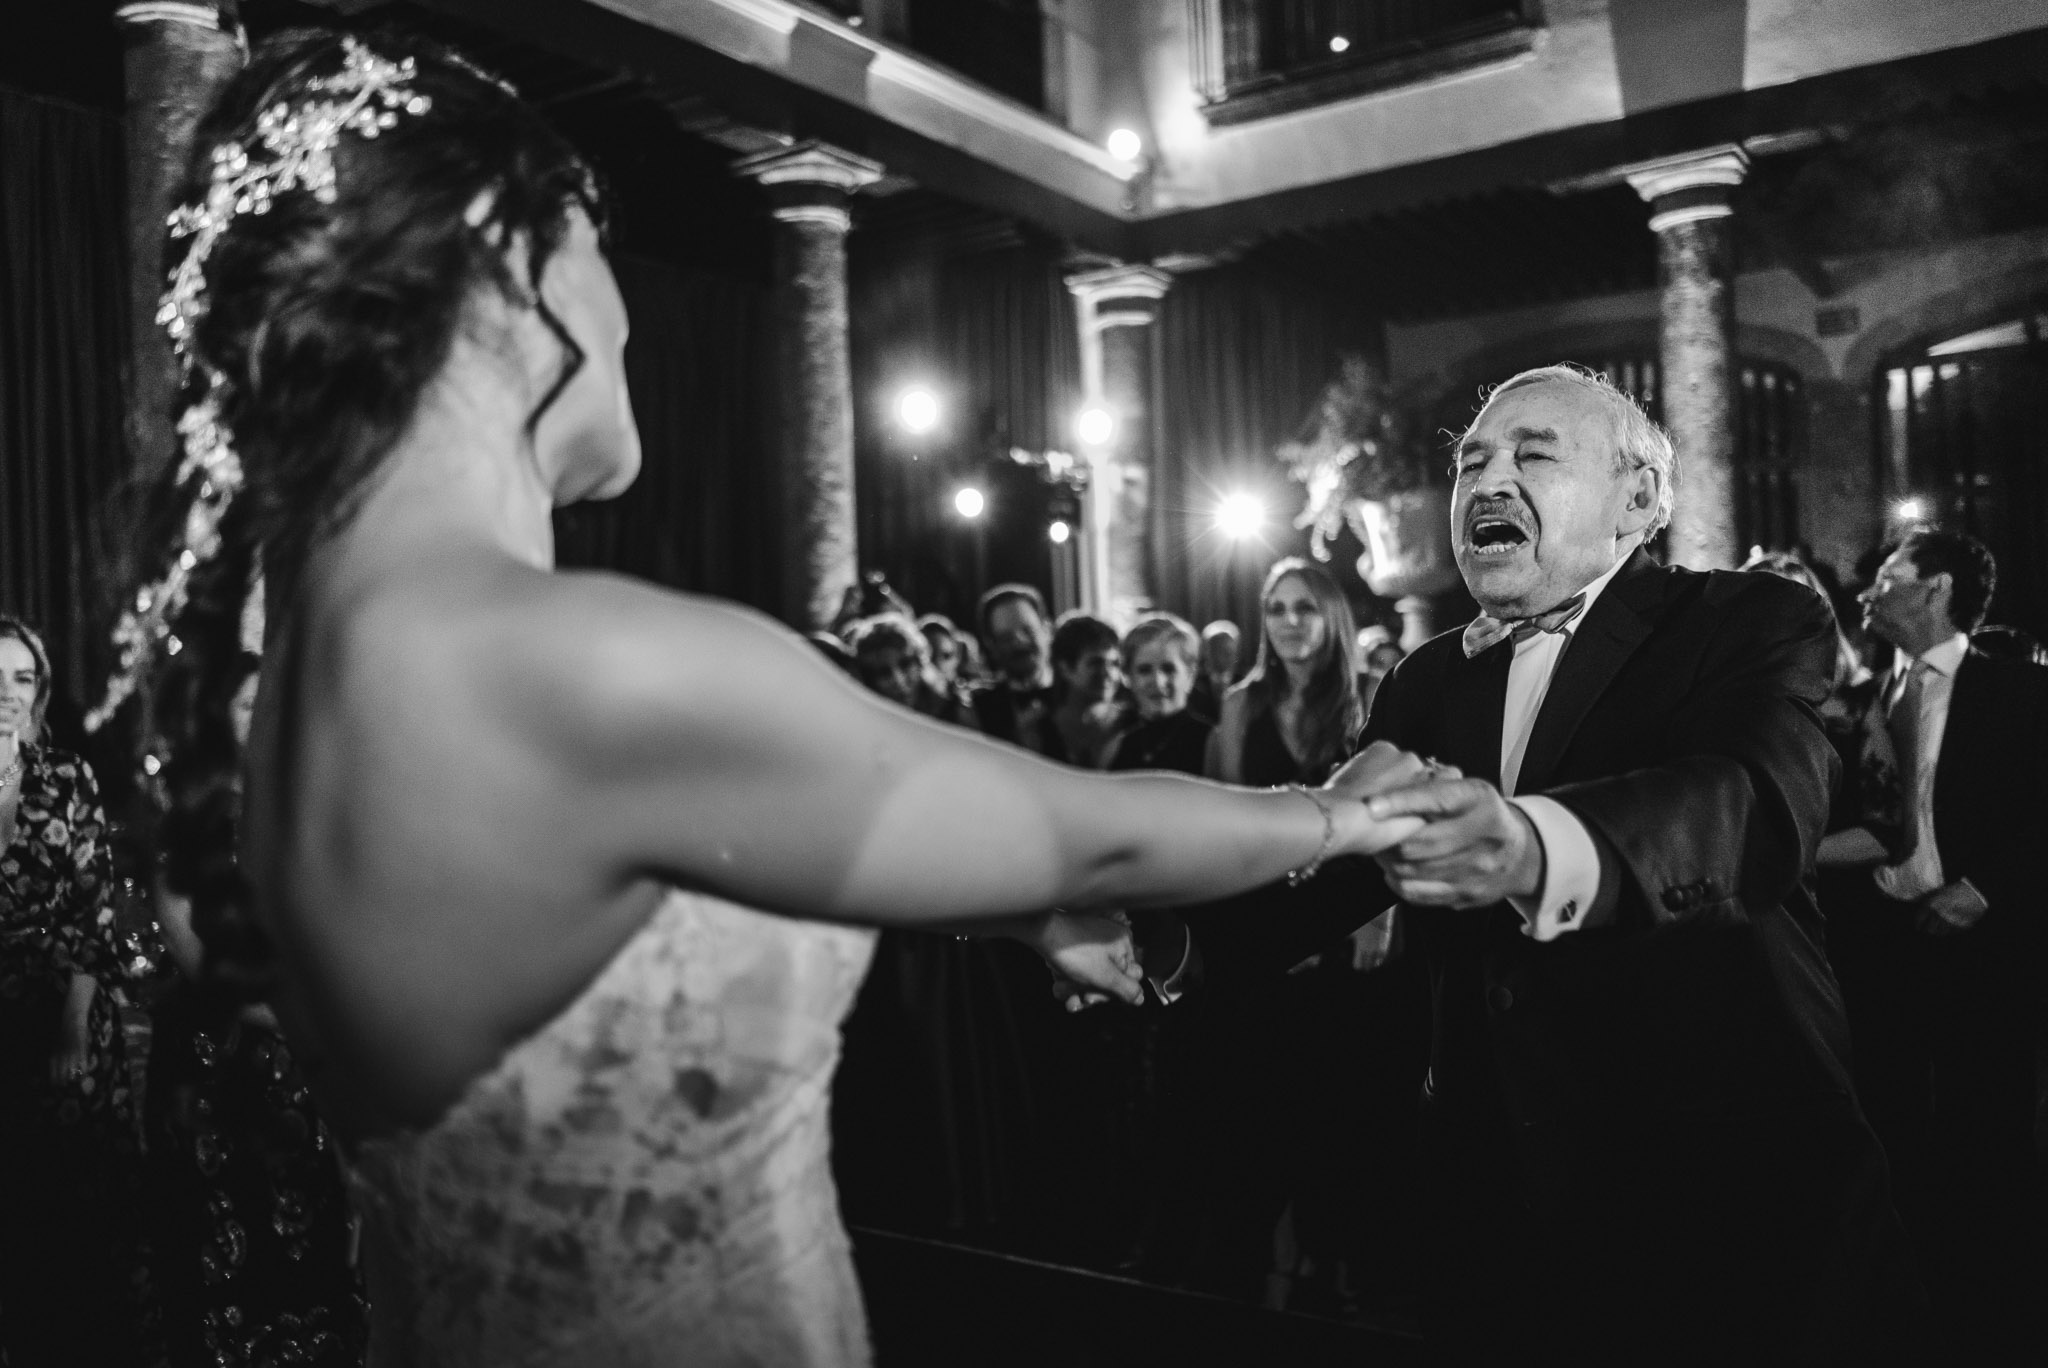 ©www.mauriziosolisbroca.com-20161002maurizio-solis-broca-mexico-canada-wedding-photographer20161002DSC05509-Edit.jpg